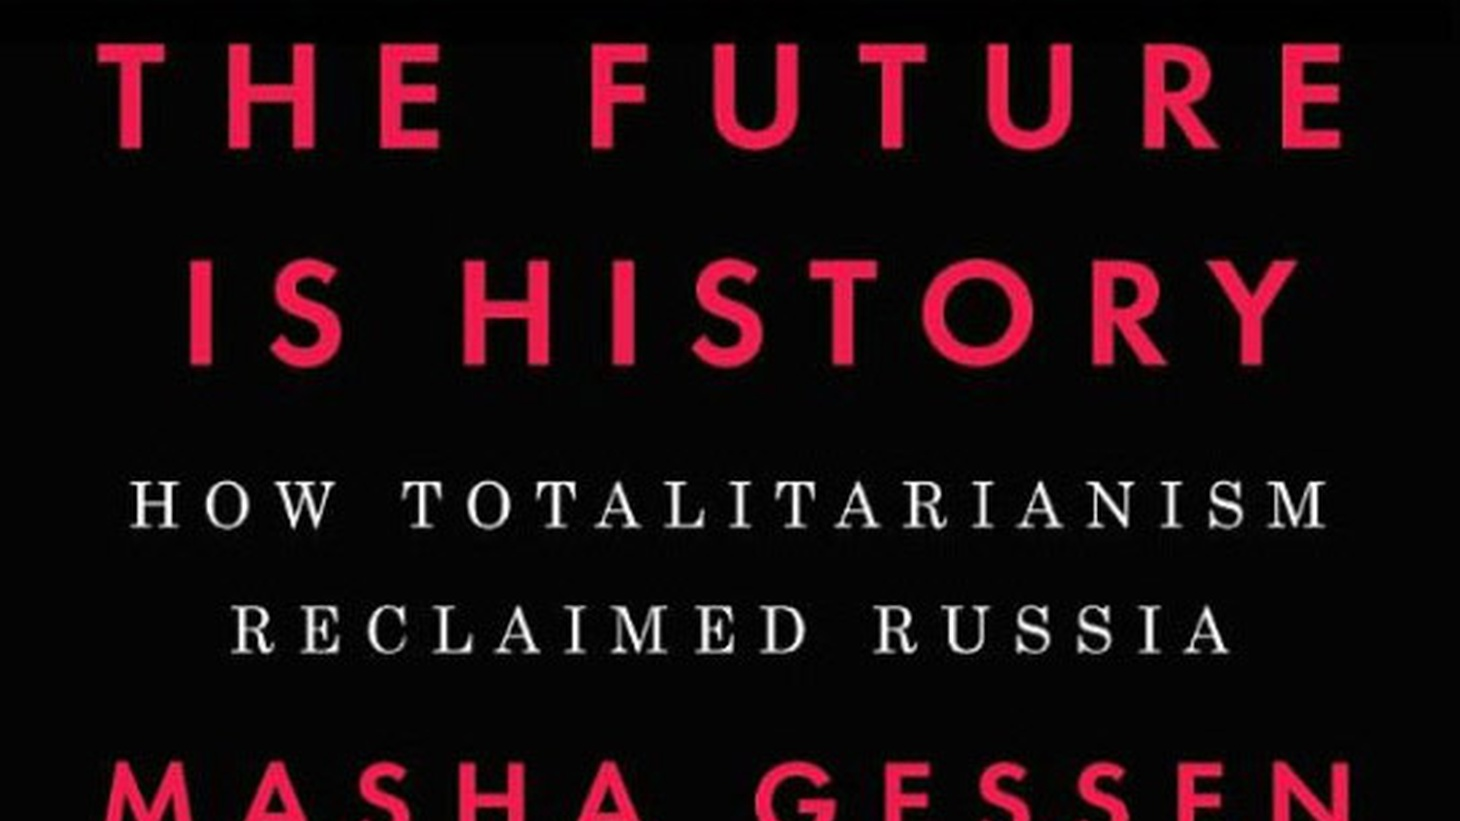 Masha Gessen was born in Russia but emigrated with her parents to the United States. She returned in the early 1990s when political change was afoot. And since then, she's become a leading observer - and critic - of Russian president Vladamir Putin. She fled Russia again in 2013. In this special podcast, Warren Olney talks with Gessen about her new book,  The Future Is History: How Totalitarianism Reclaimed Russia .